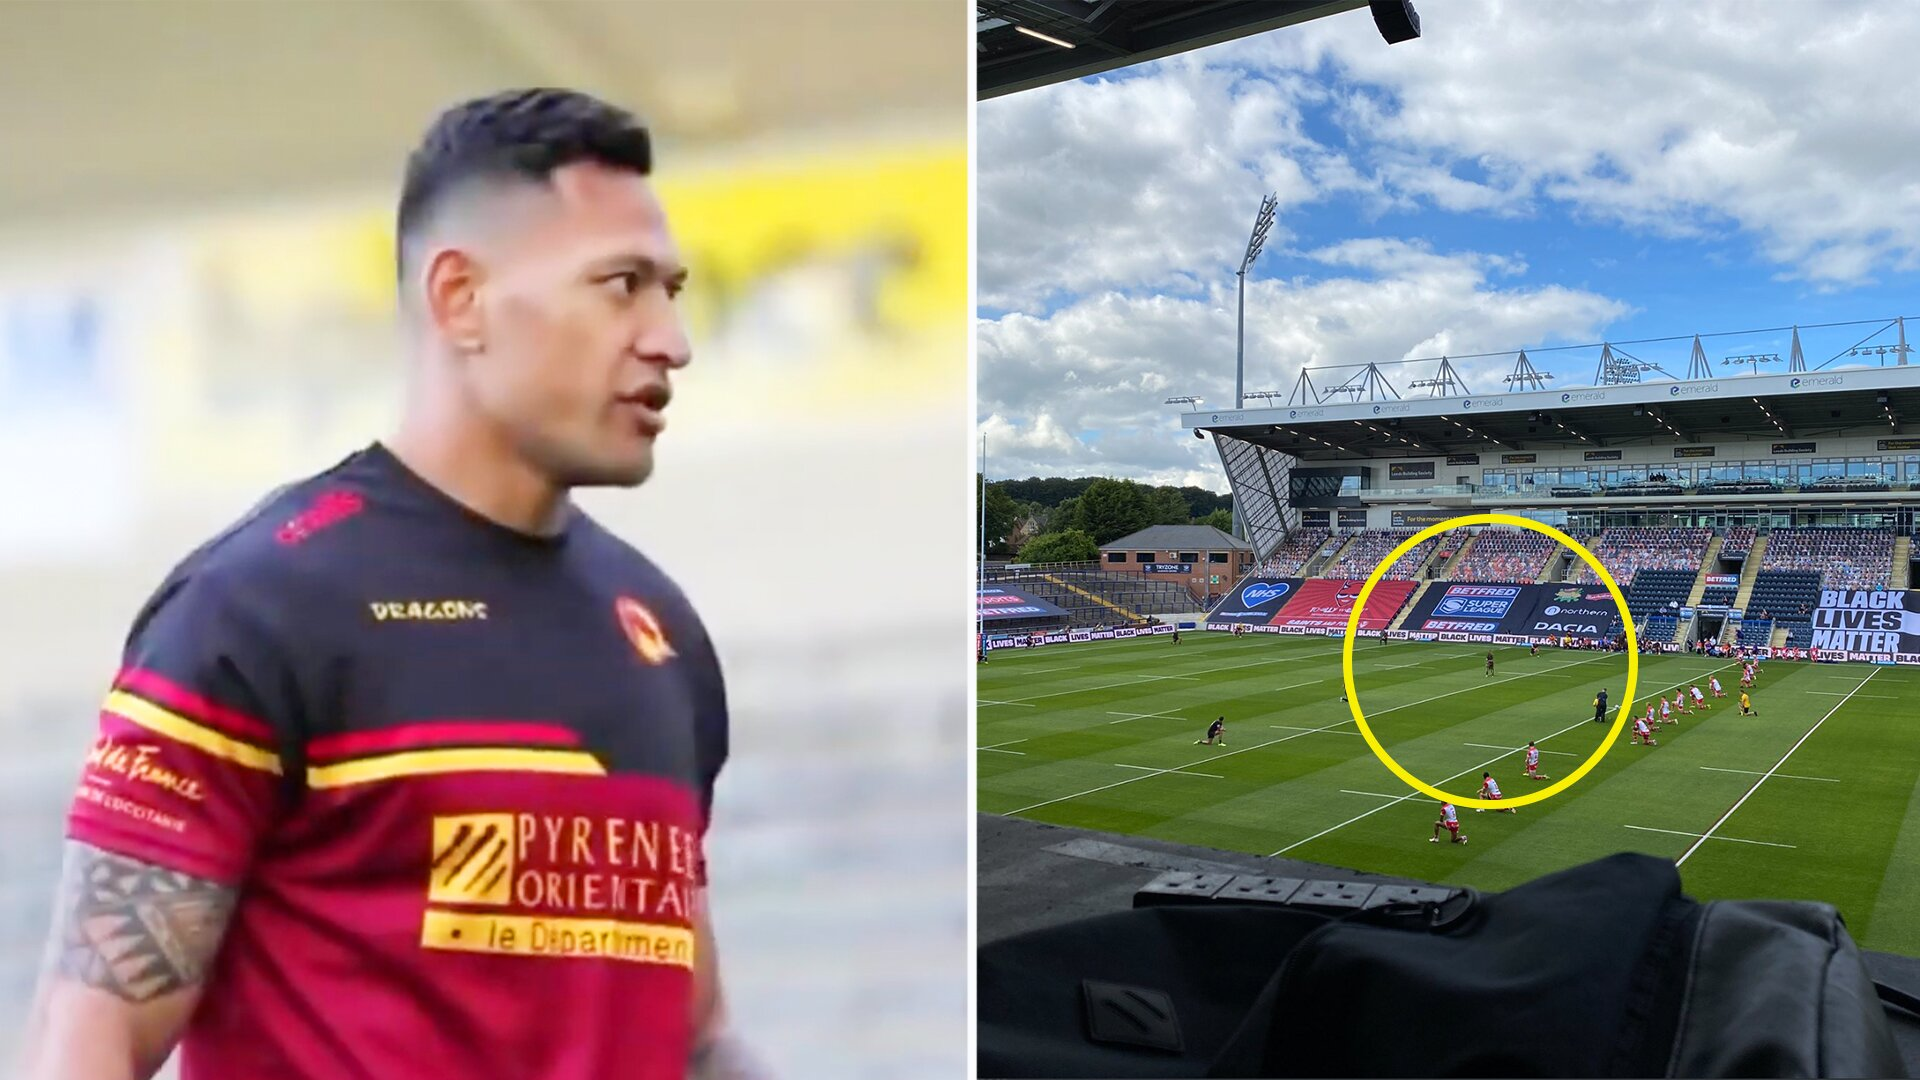 People are stunned by what Israel Folau did today as players knelt before kick-off